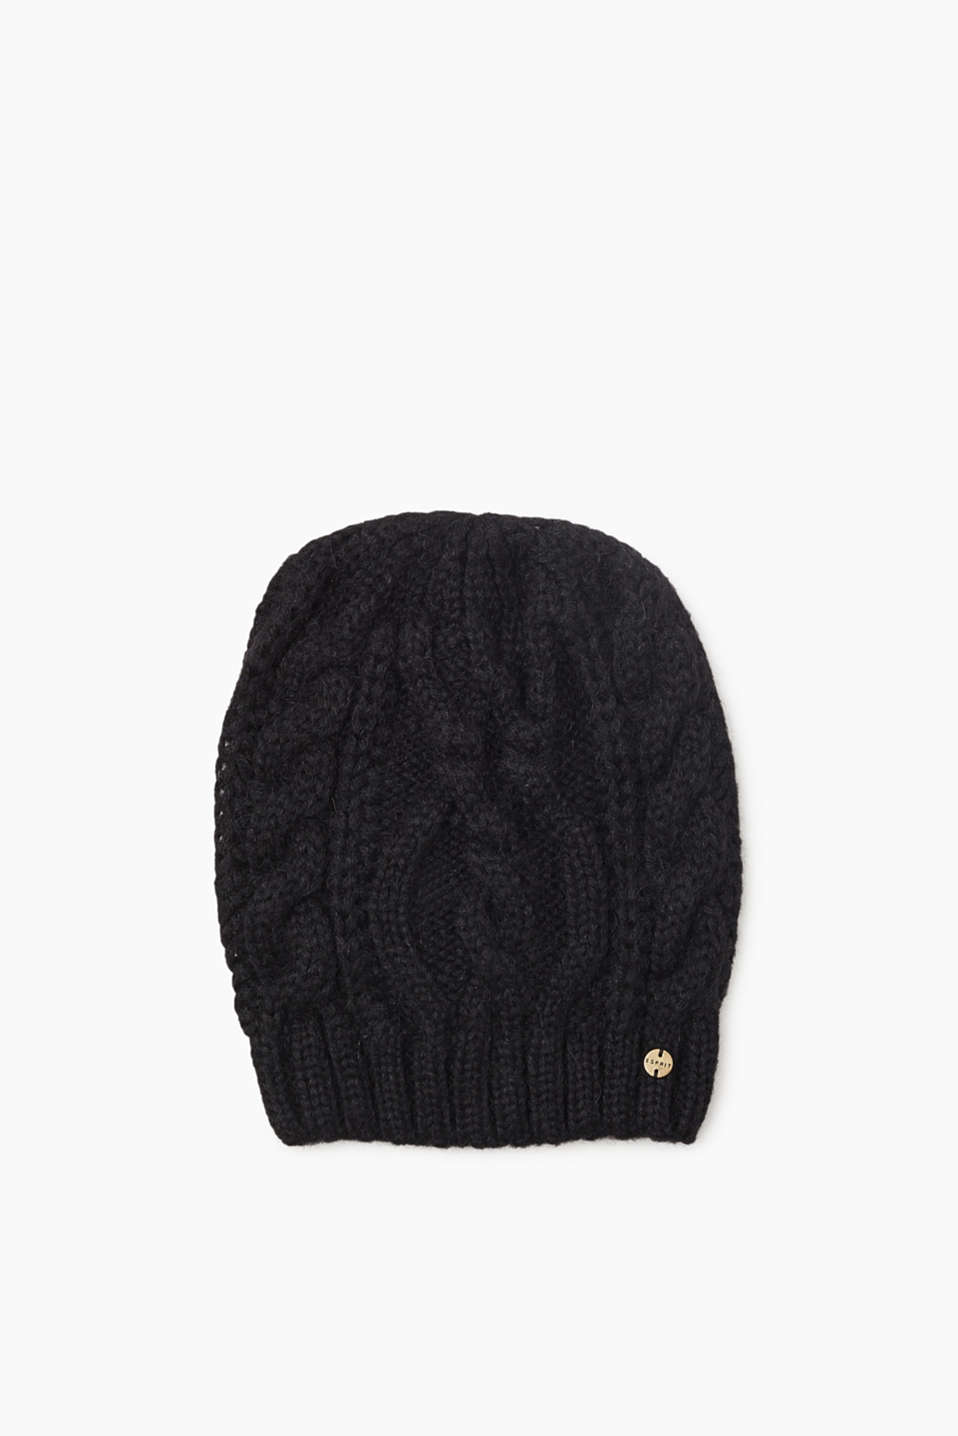 Esprit - Beanie with Merino wool and cable pattern